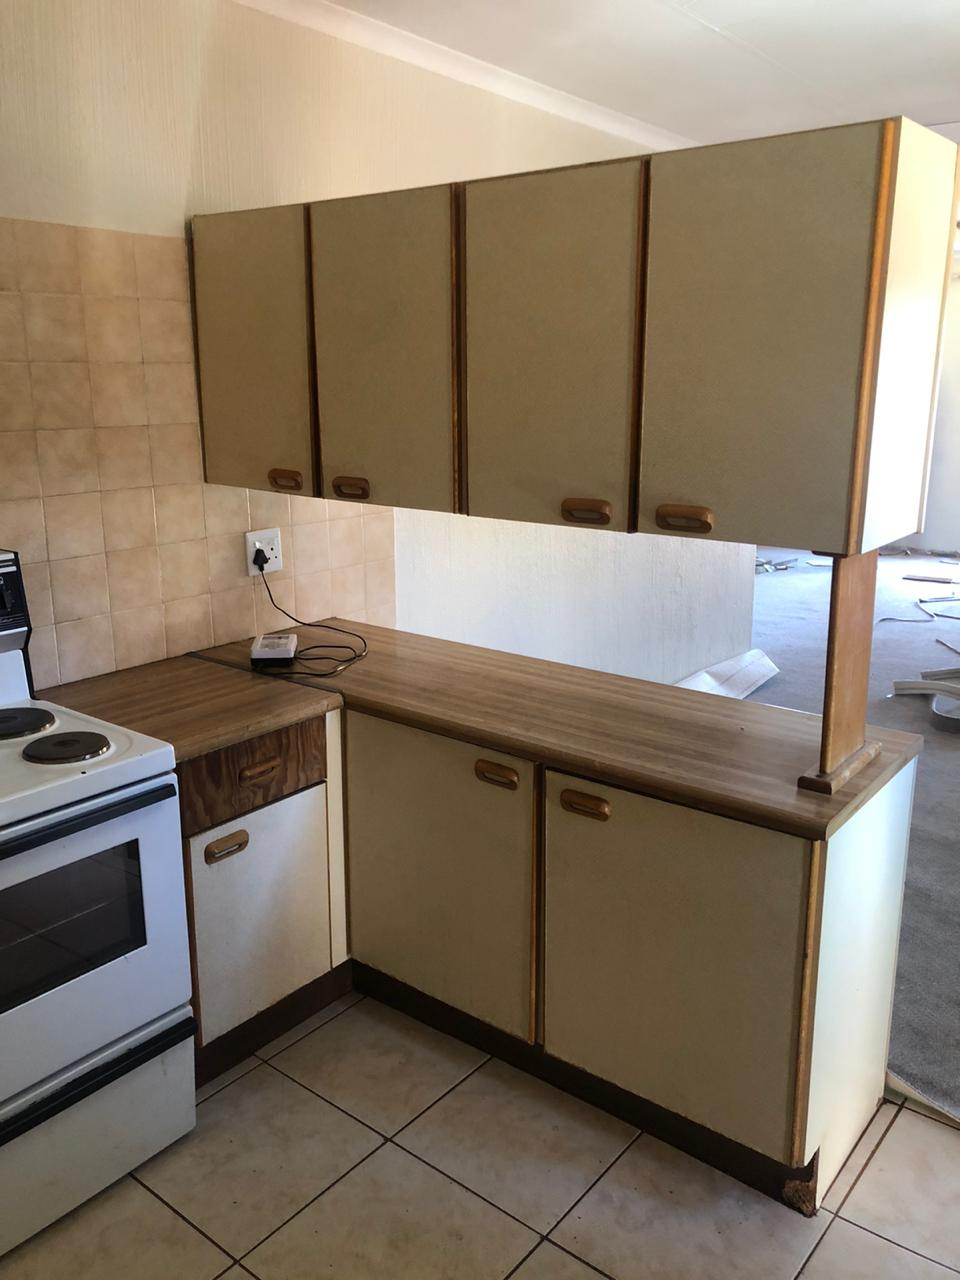 Kitchen cupboards , wooden flooring , sink, and stove